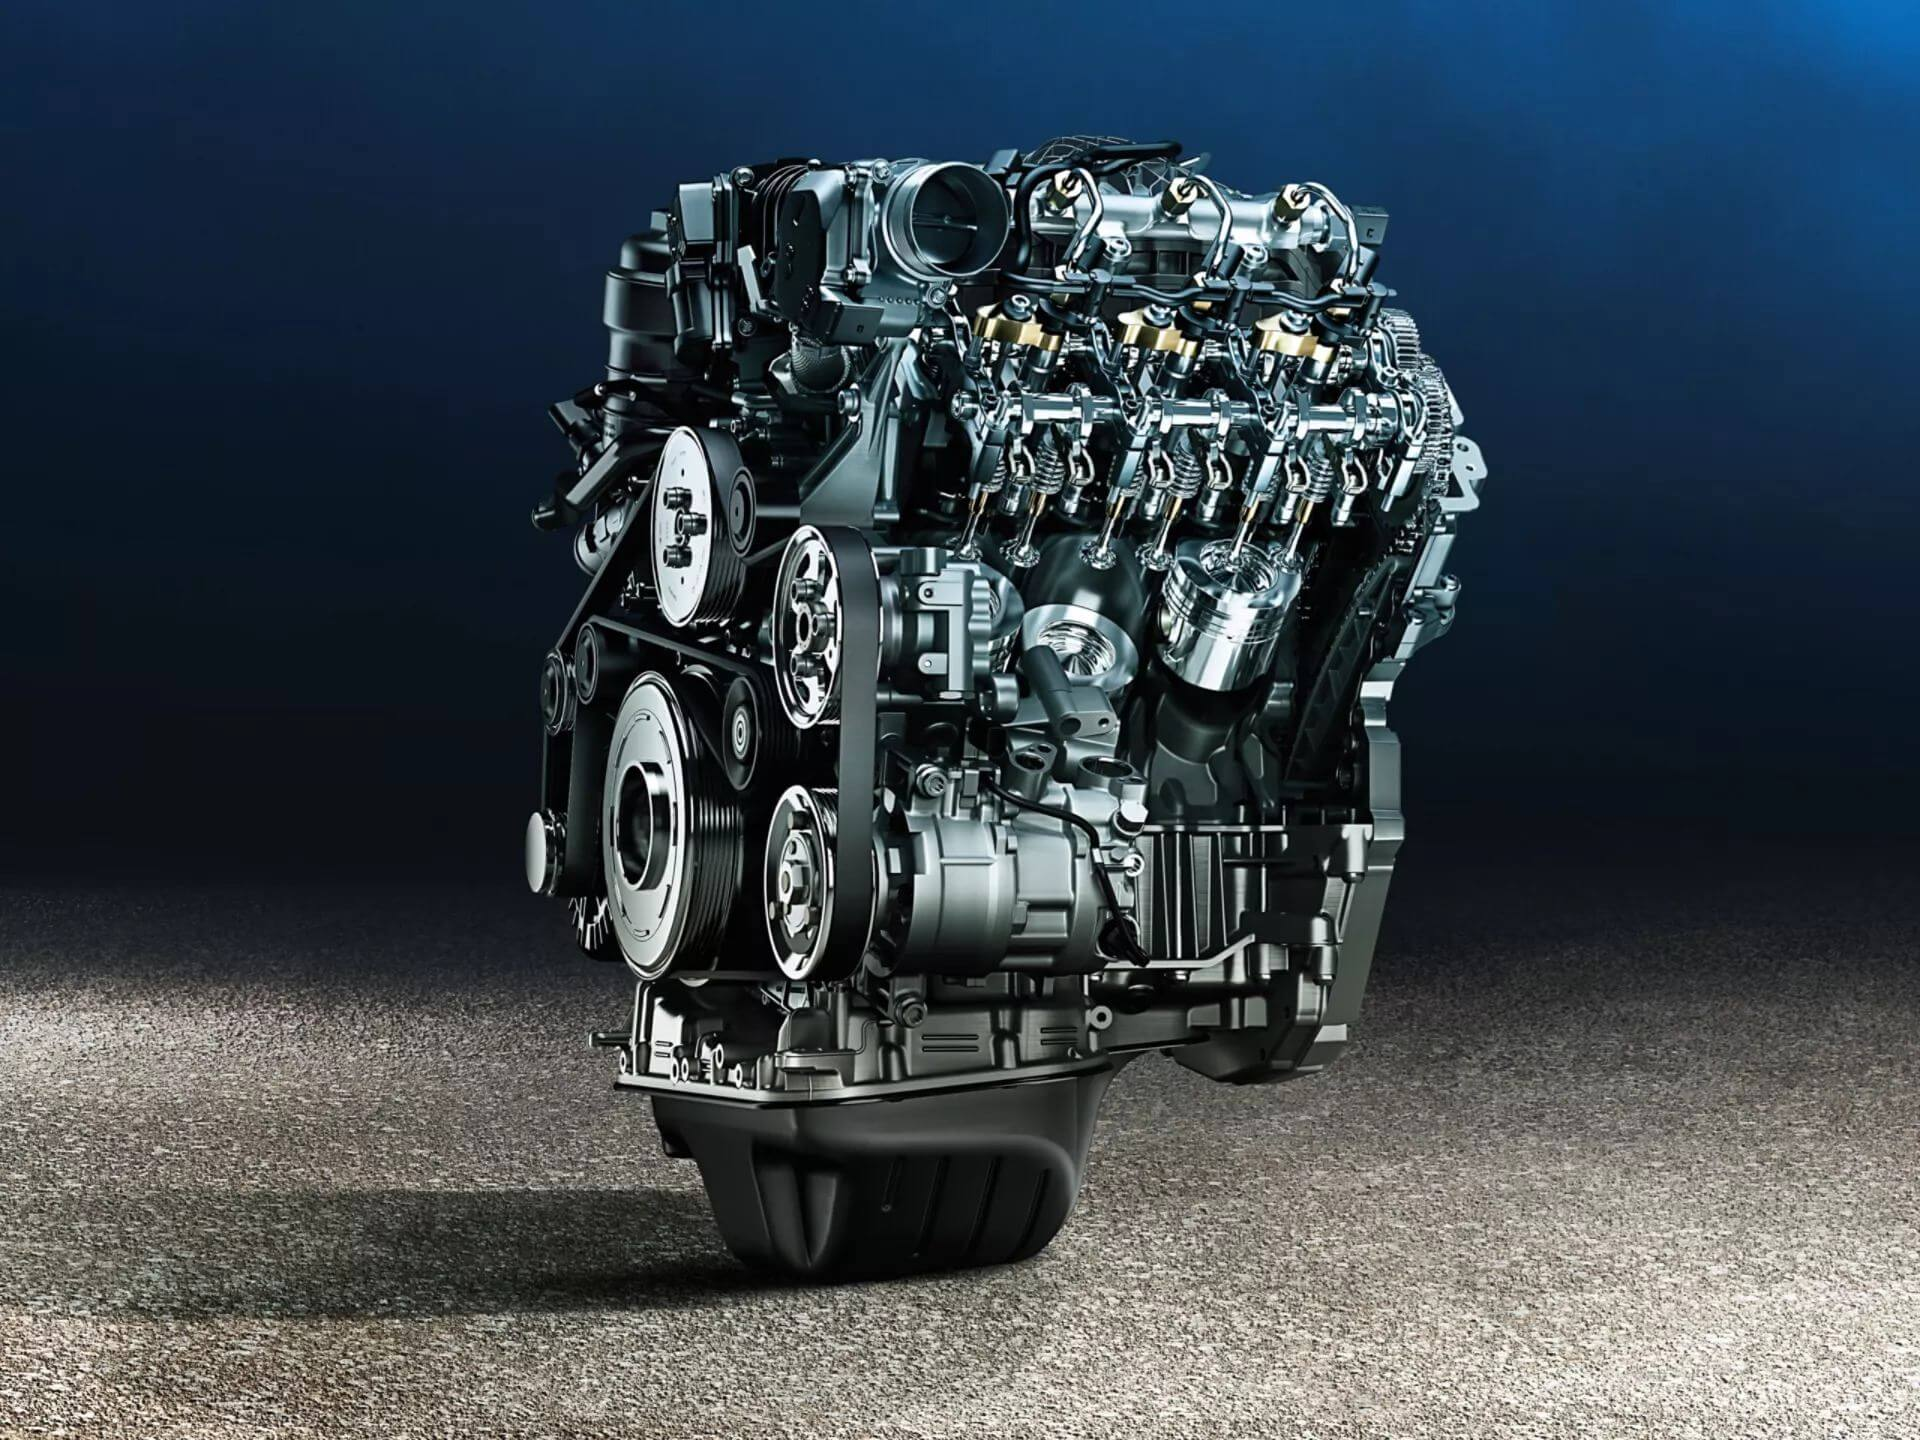 Power is its strong suit TDI Engine Image